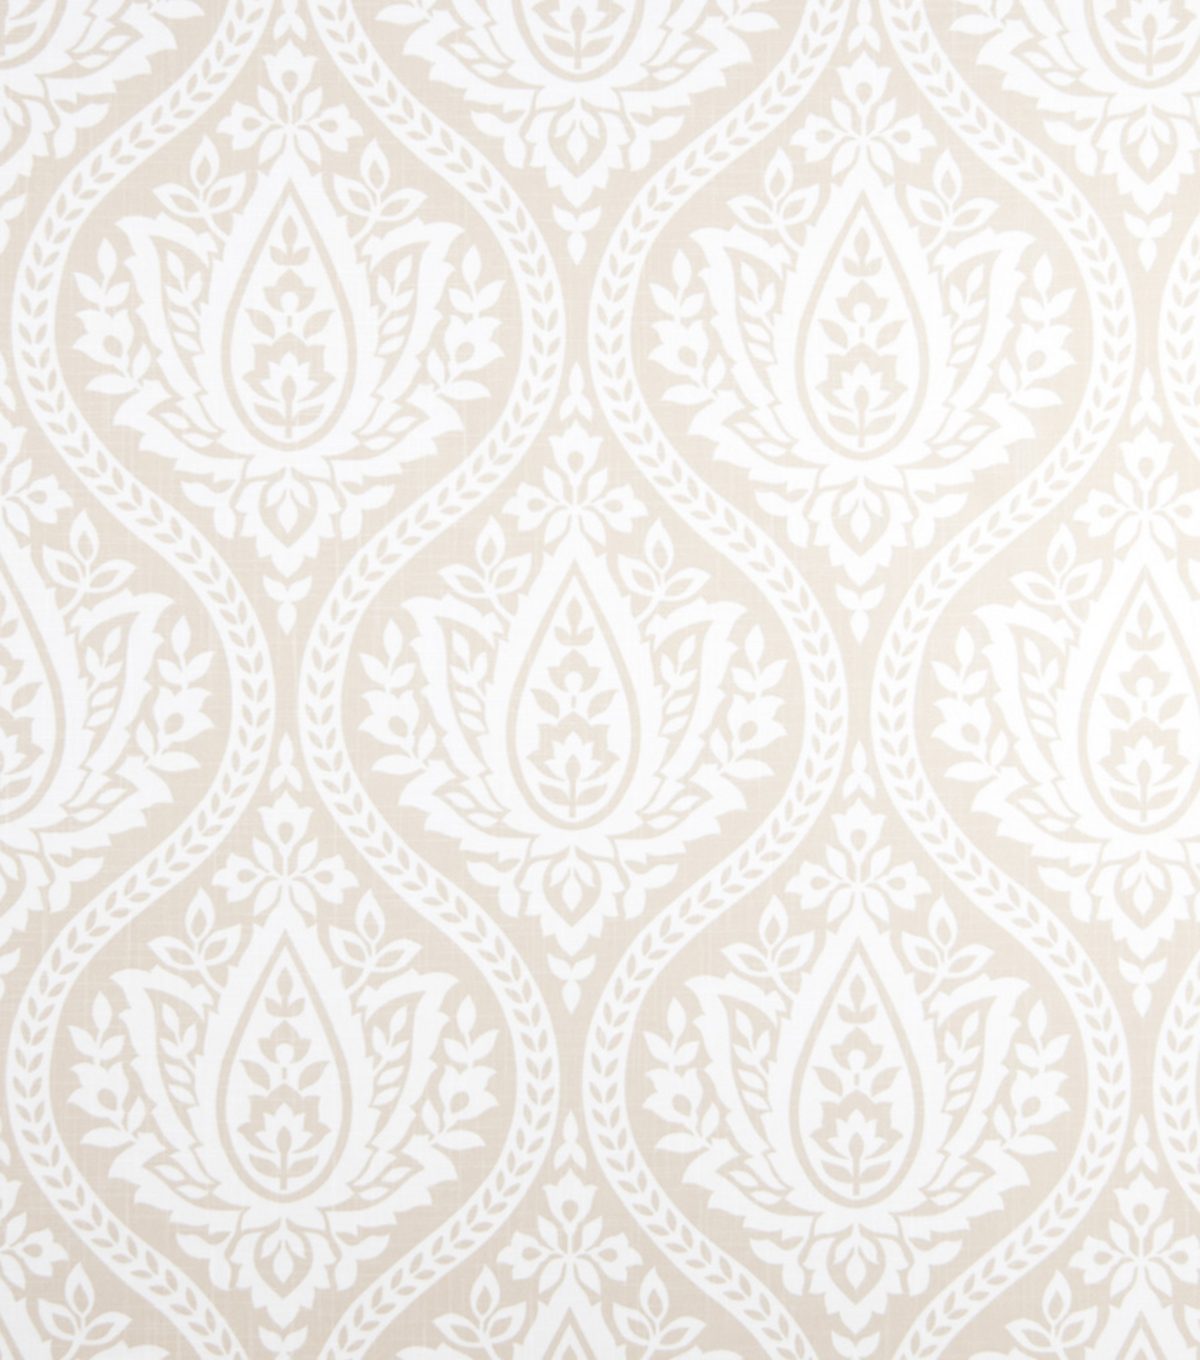 Home Decor 8\u0022x8\u0022 Fabric Swatch-Print Fabric Eaton Square Farrell Camel